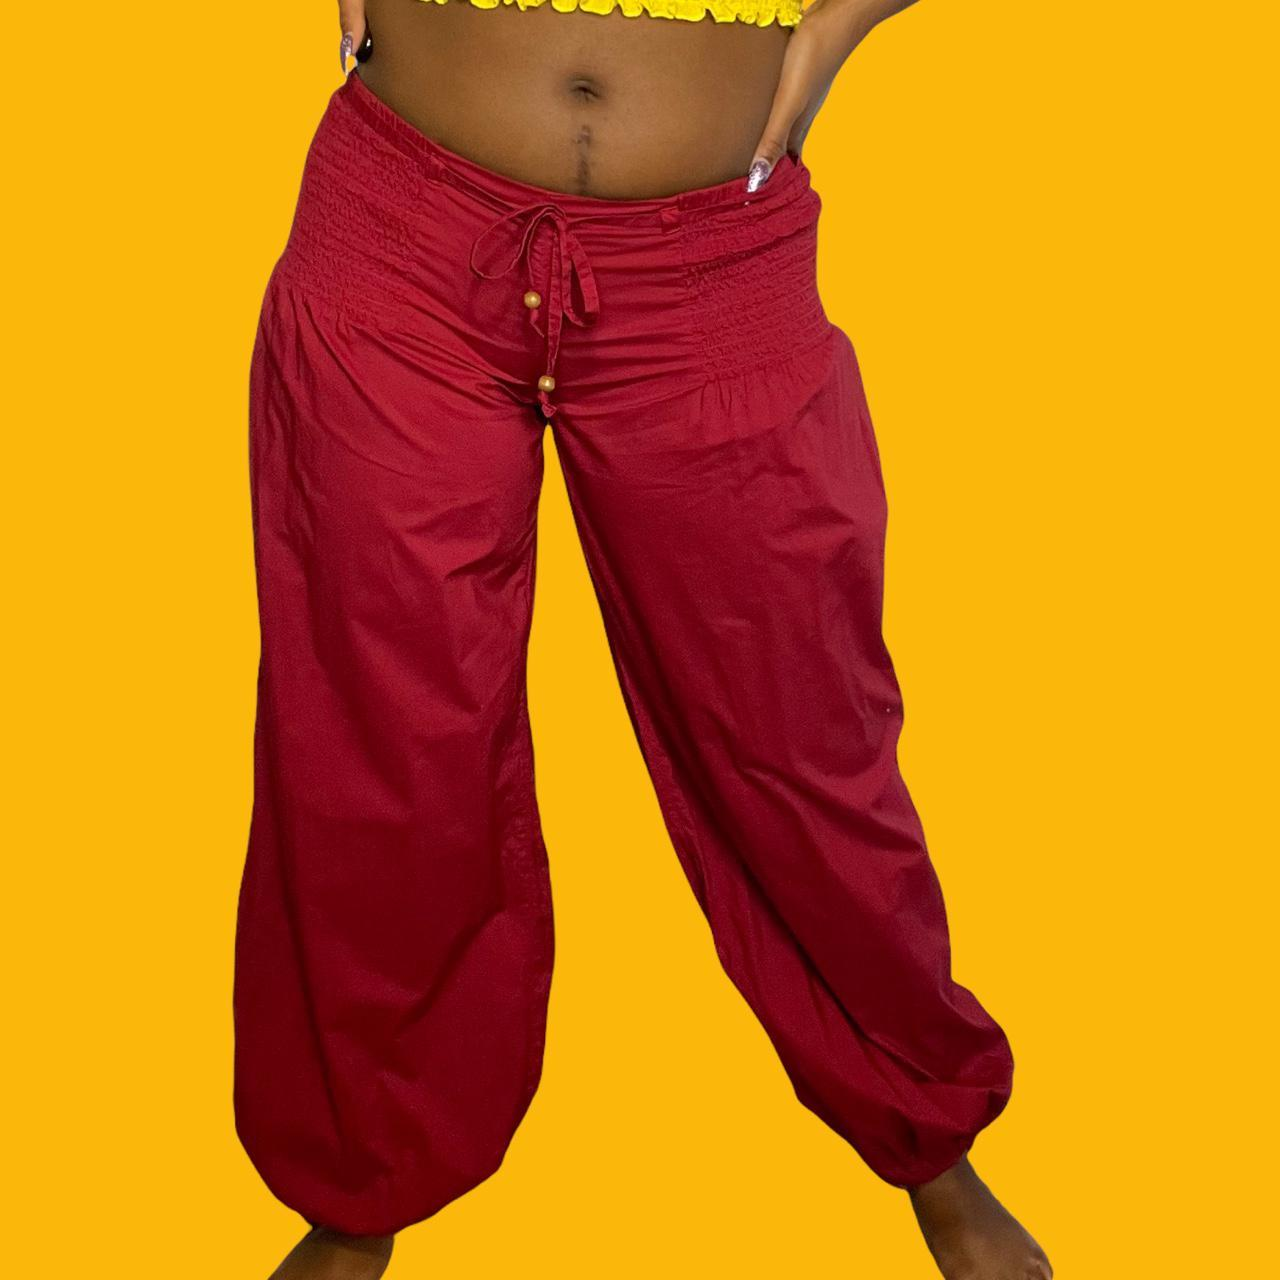 Product Image 1 - Burgundy low-rise Genie pants.   Size